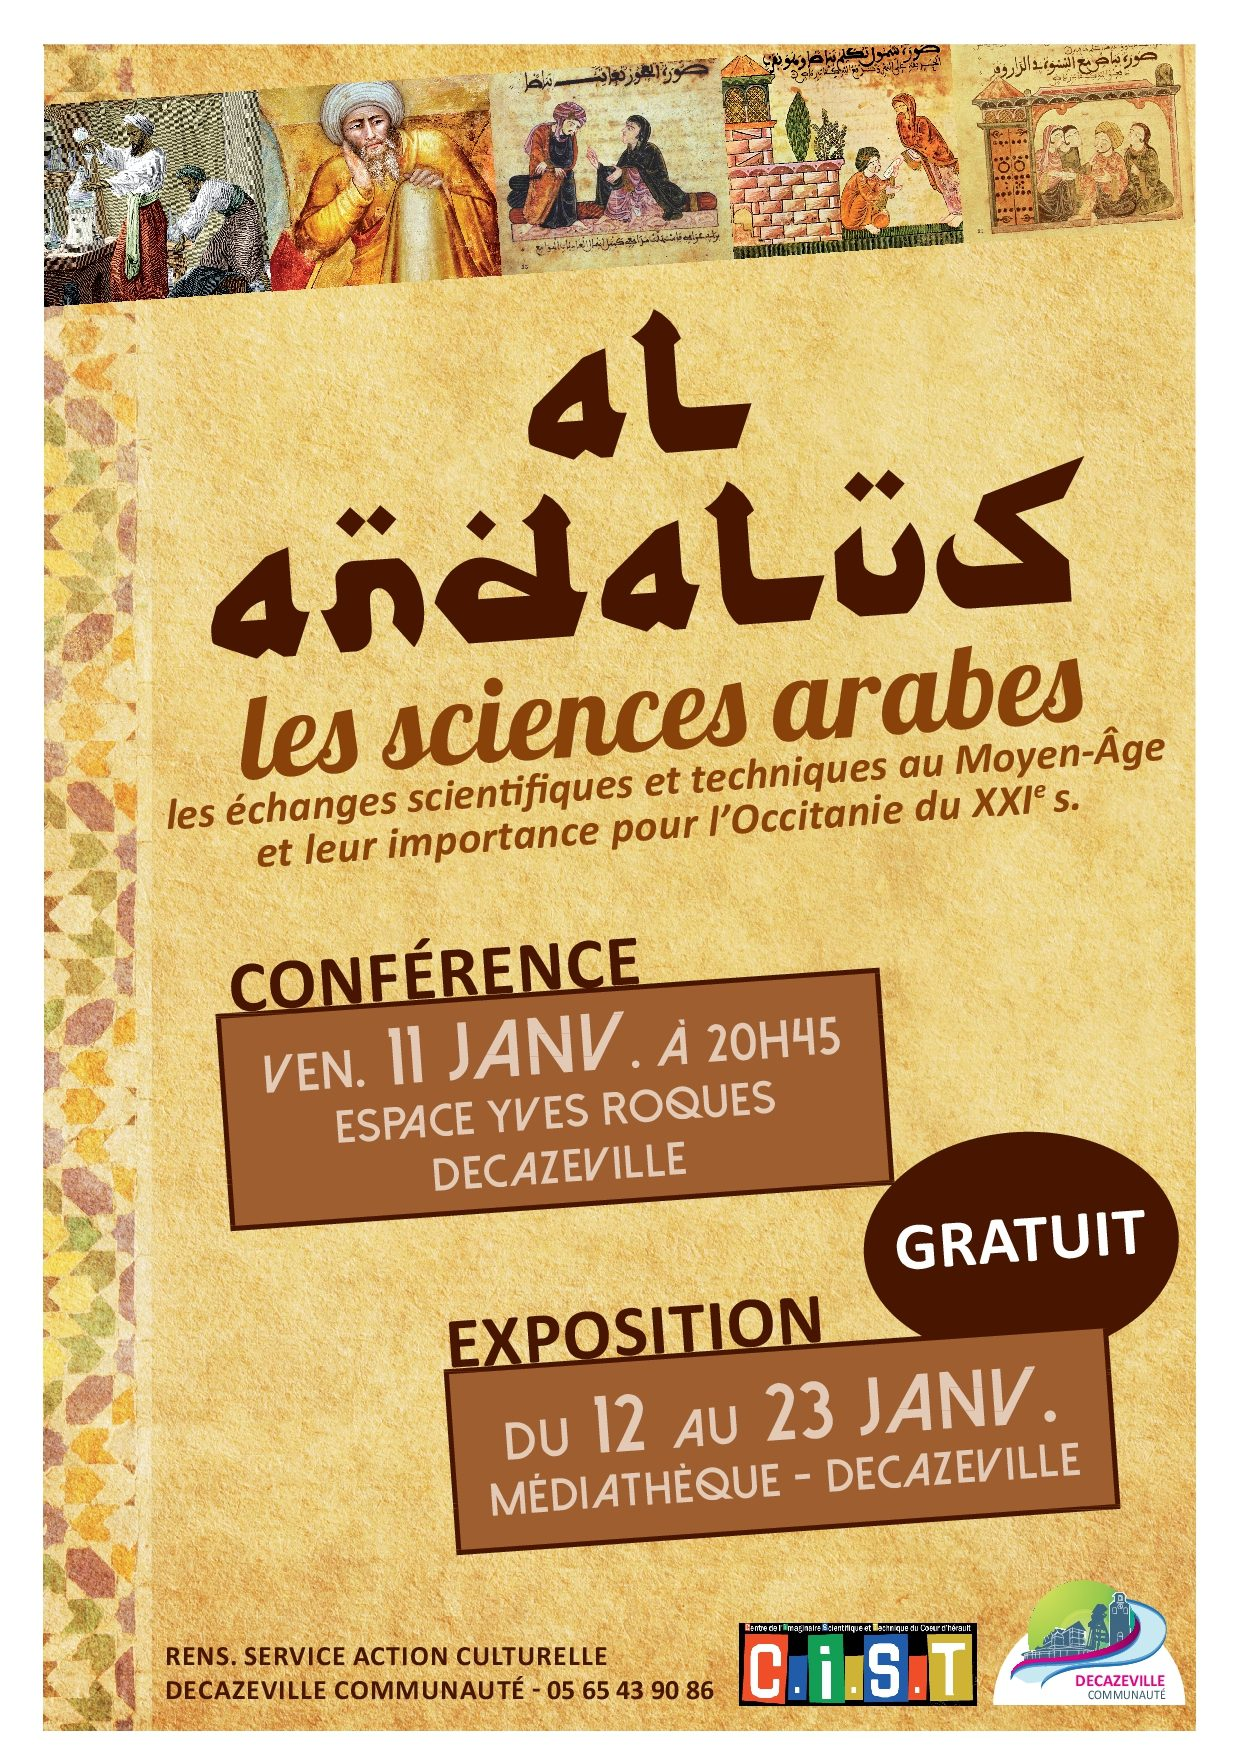 Affiche Expo-conférence Al Andalus.jpg